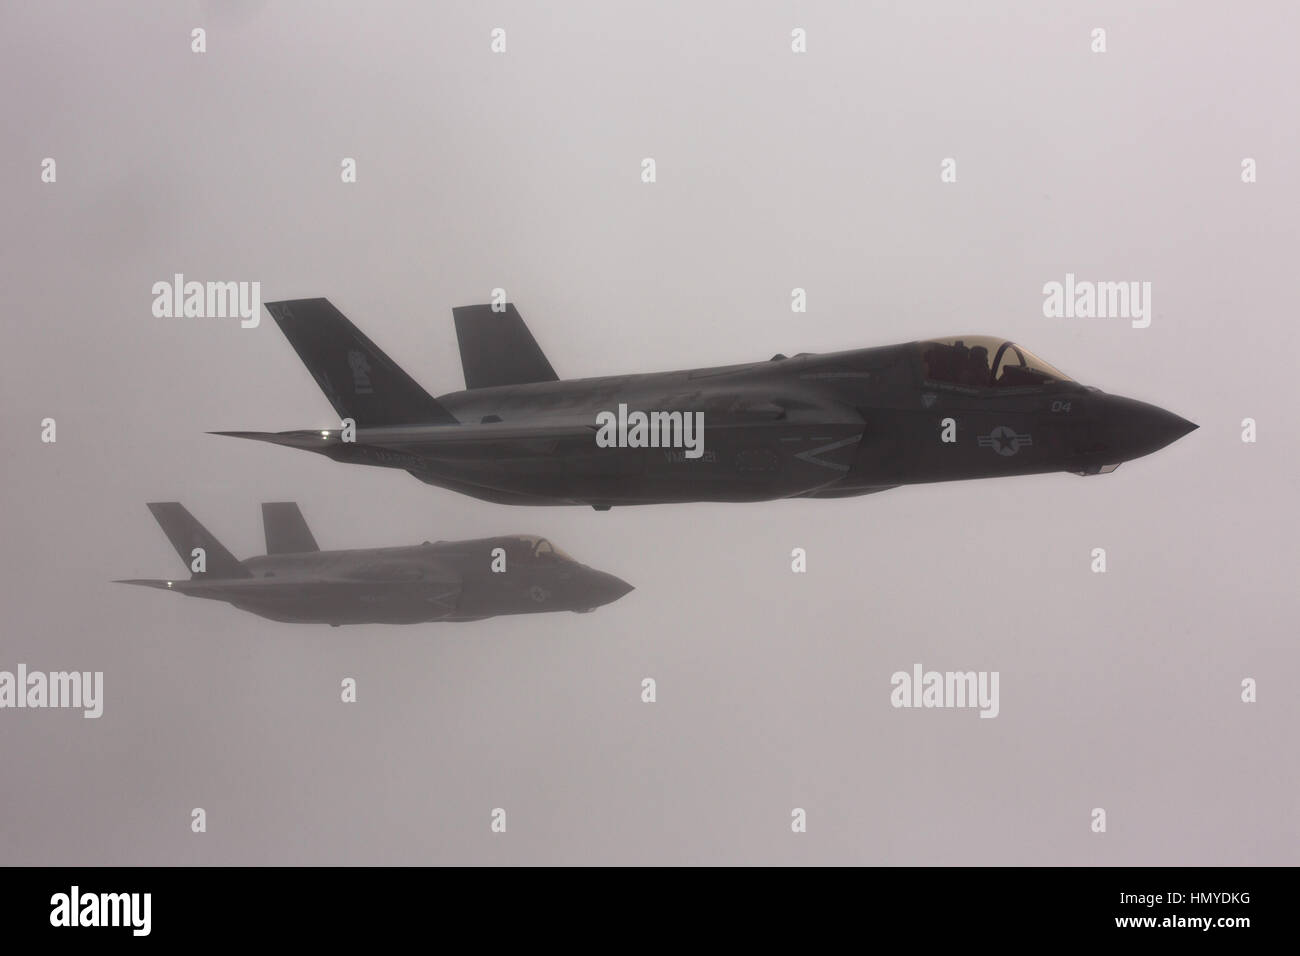 Two Lockheed Martin F-35B Lightning II stealth fighter aircraft fly in formation through a cloud bank on the way - Stock Image